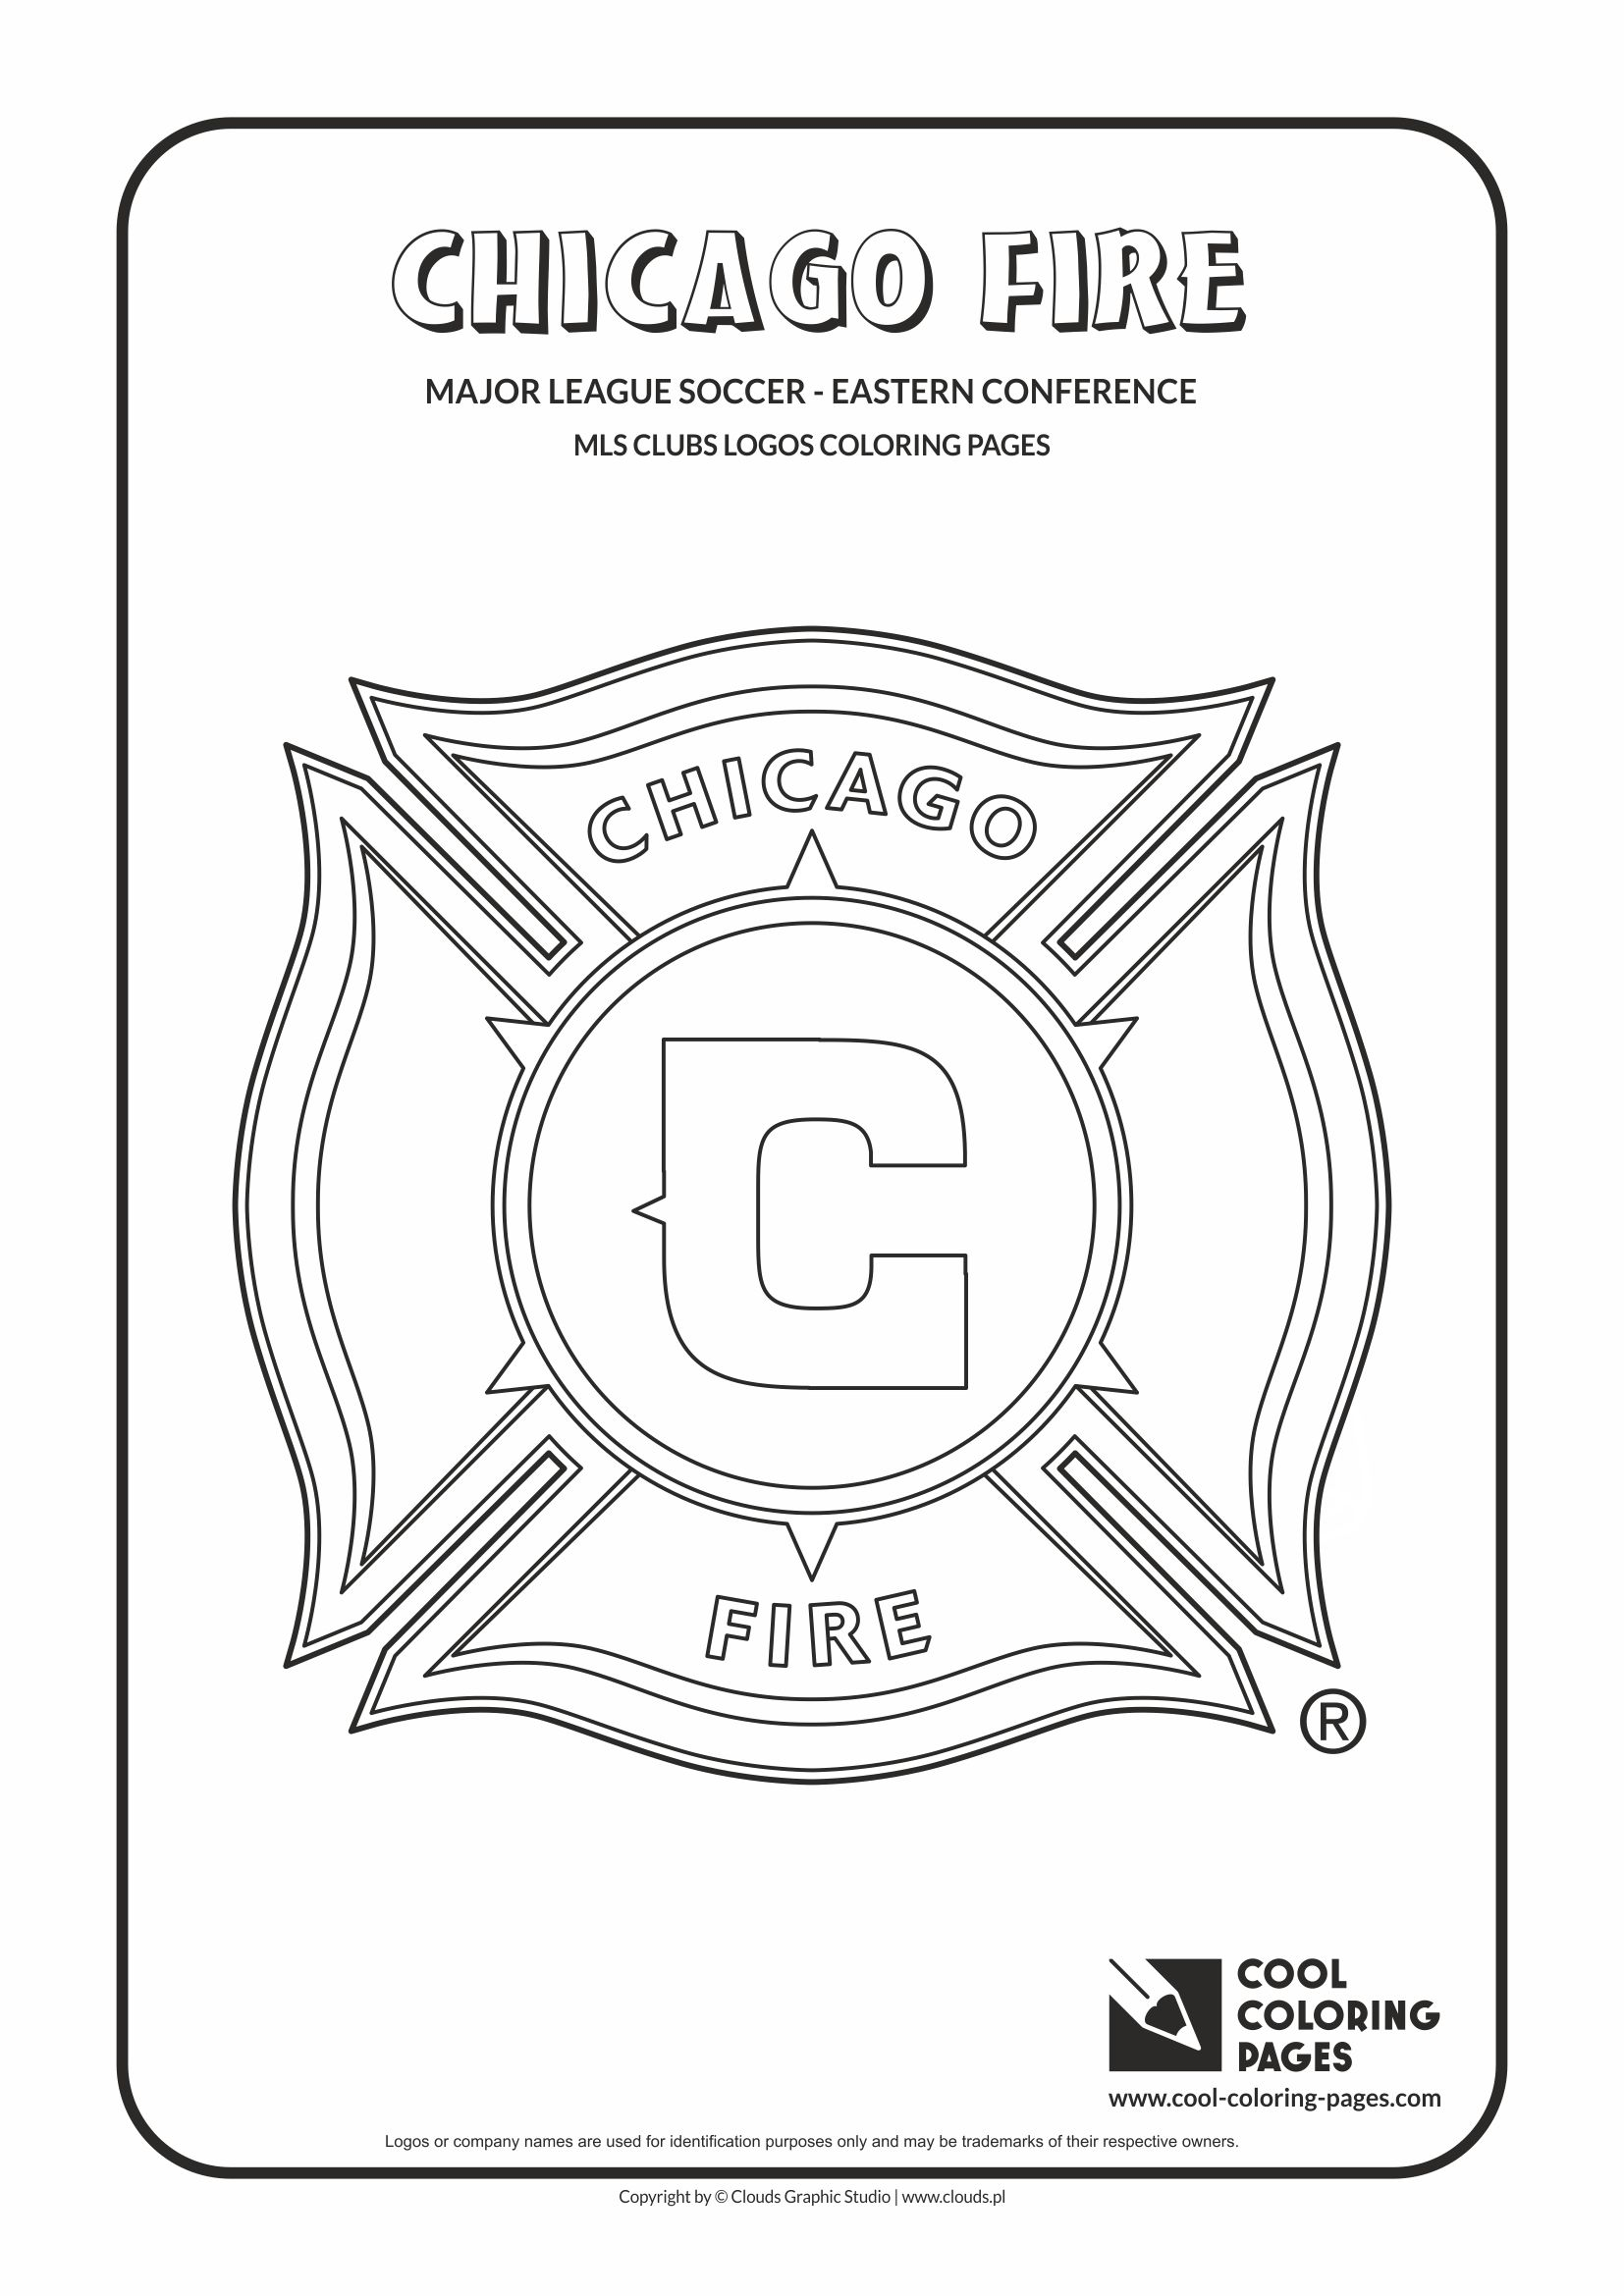 Cool Coloring Pages - Major League Soccer Logos - Eastern Conference / Chicago Fire Soccer Club logo / Coloring page with Chicago Fire Soccer Club logo